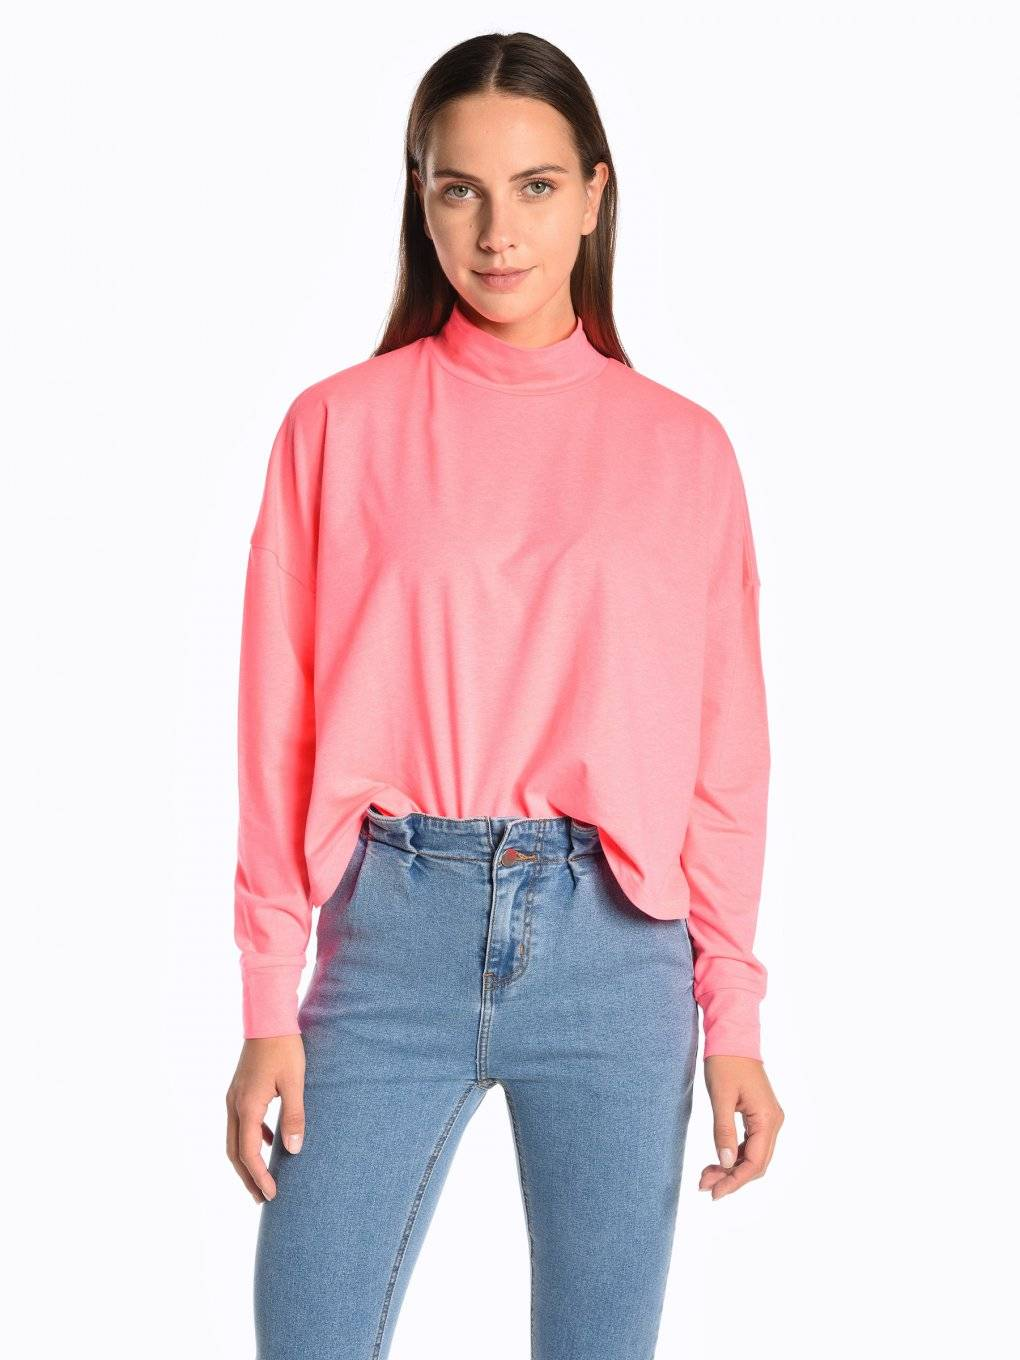 High neck neon top